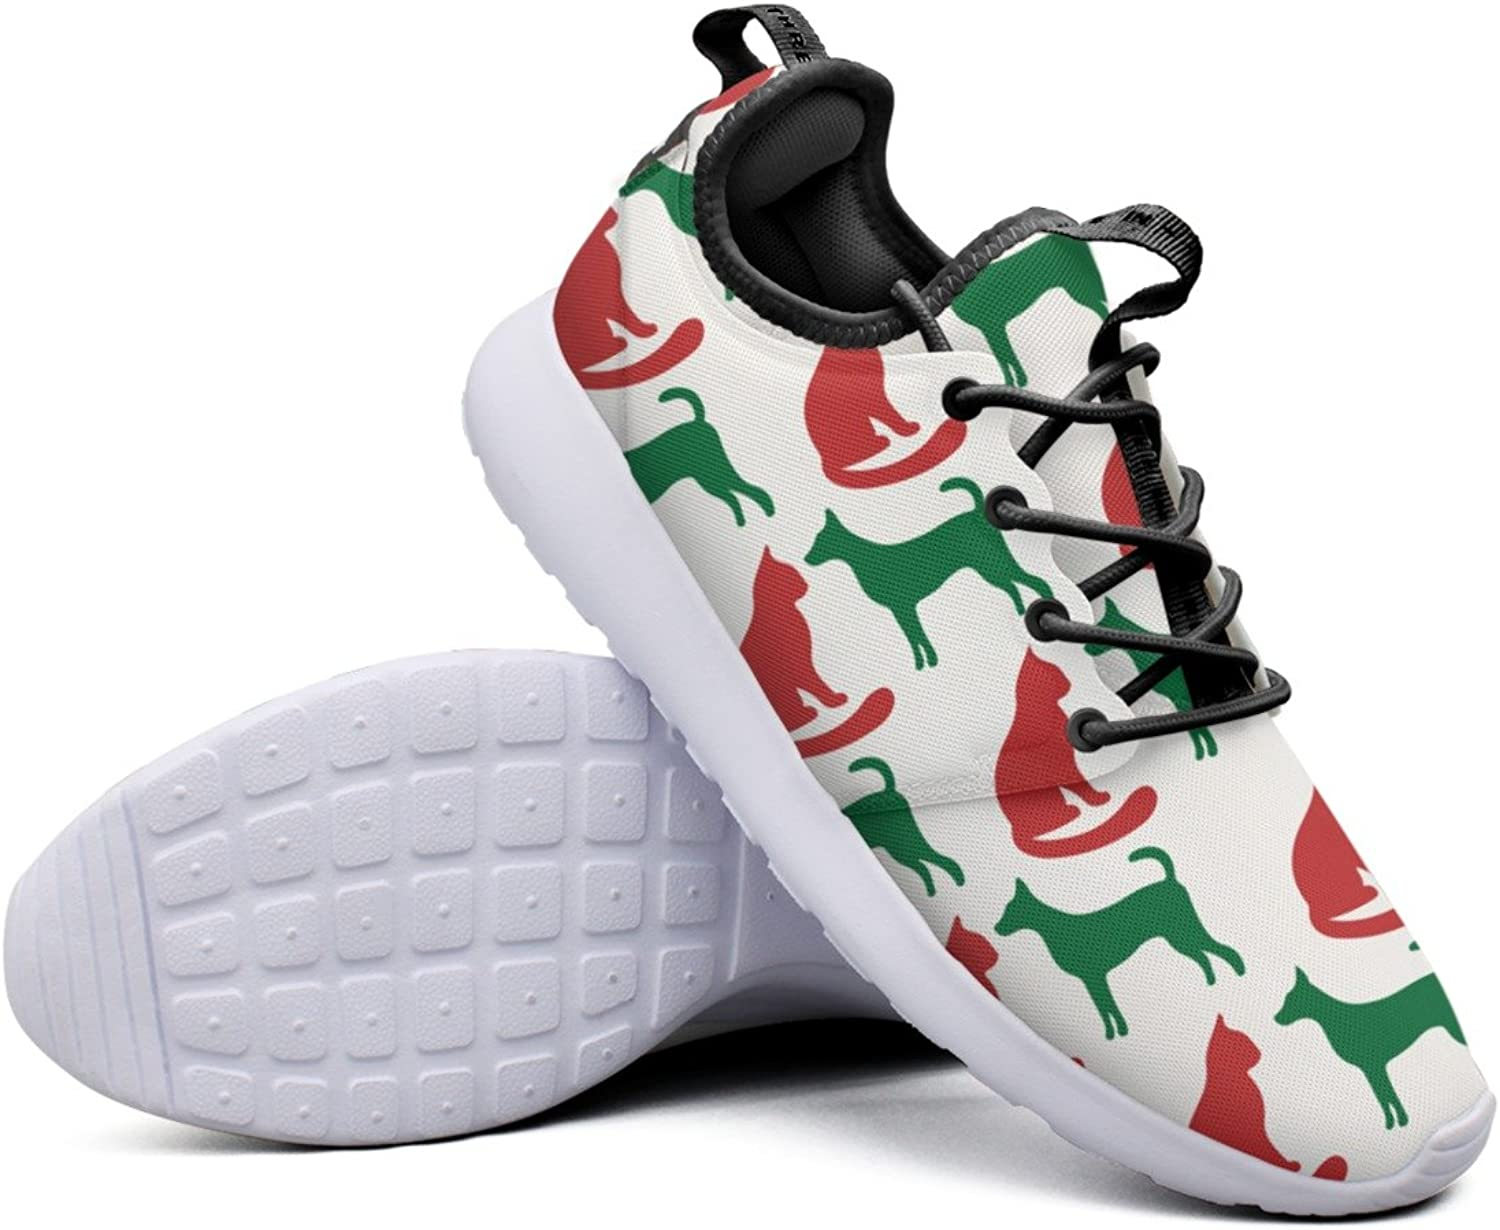 Christmas Cat And Dog Silhouettes Women's Classic Sneakers Lightweight Mesh Sports shoes